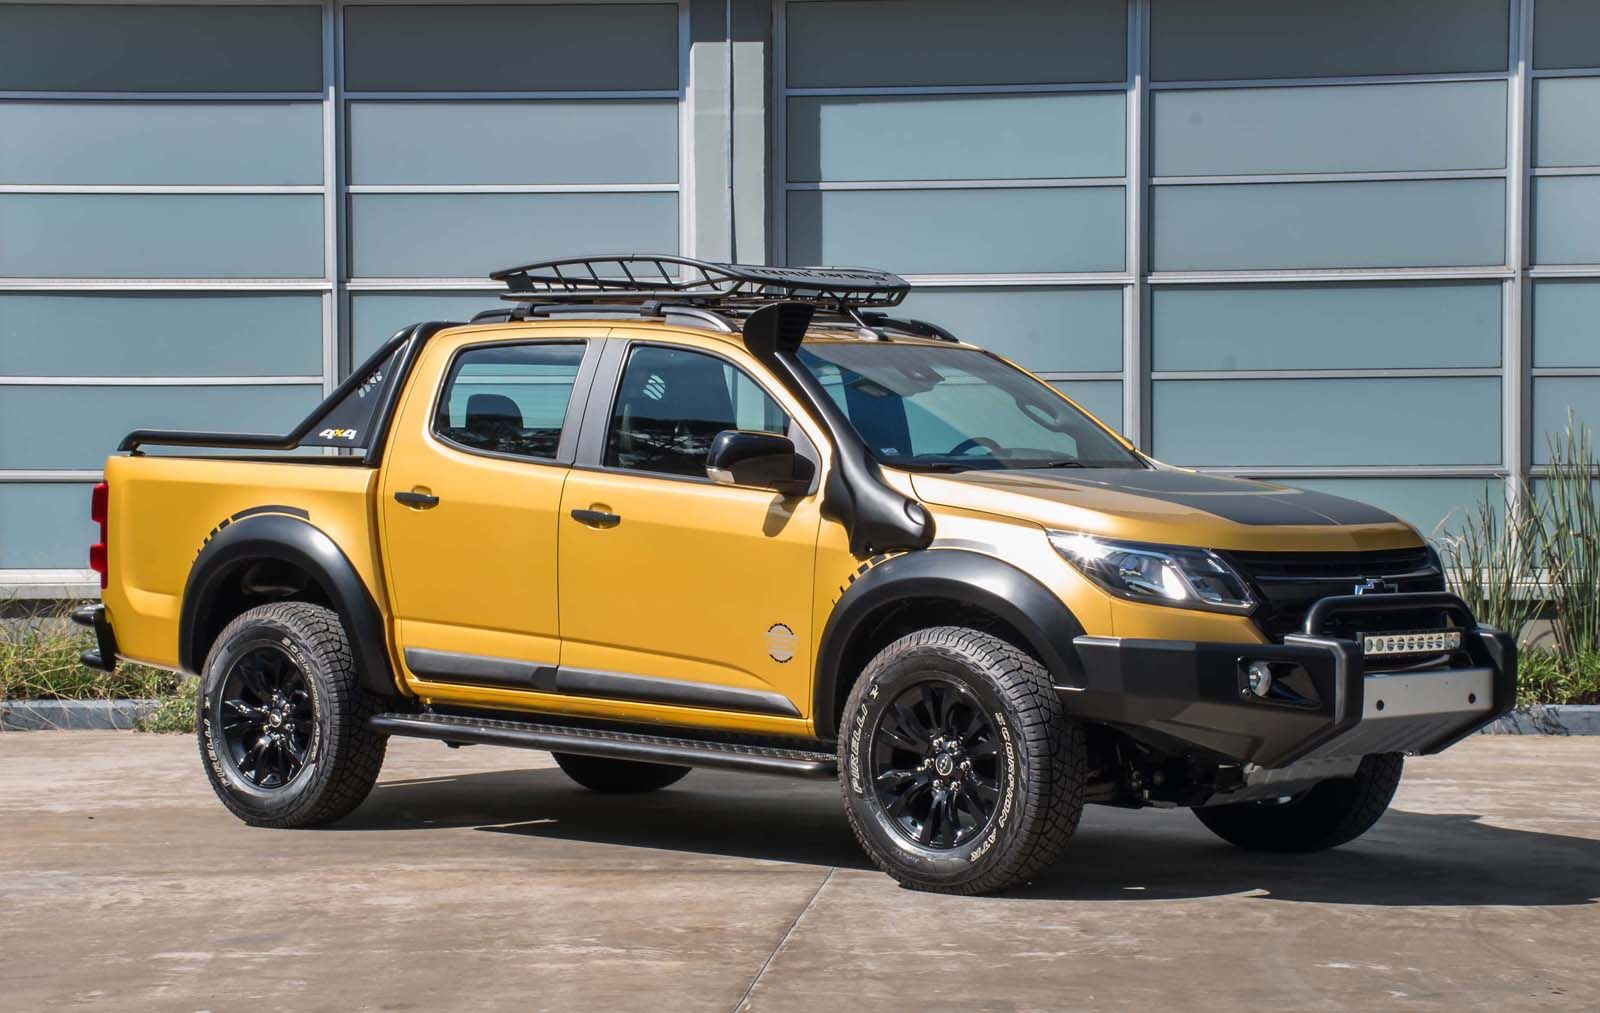 Chevy s10 trailboss concept looks more tonka than bumblee chevy s10chevrolet coloradoargentinahtmltrucks